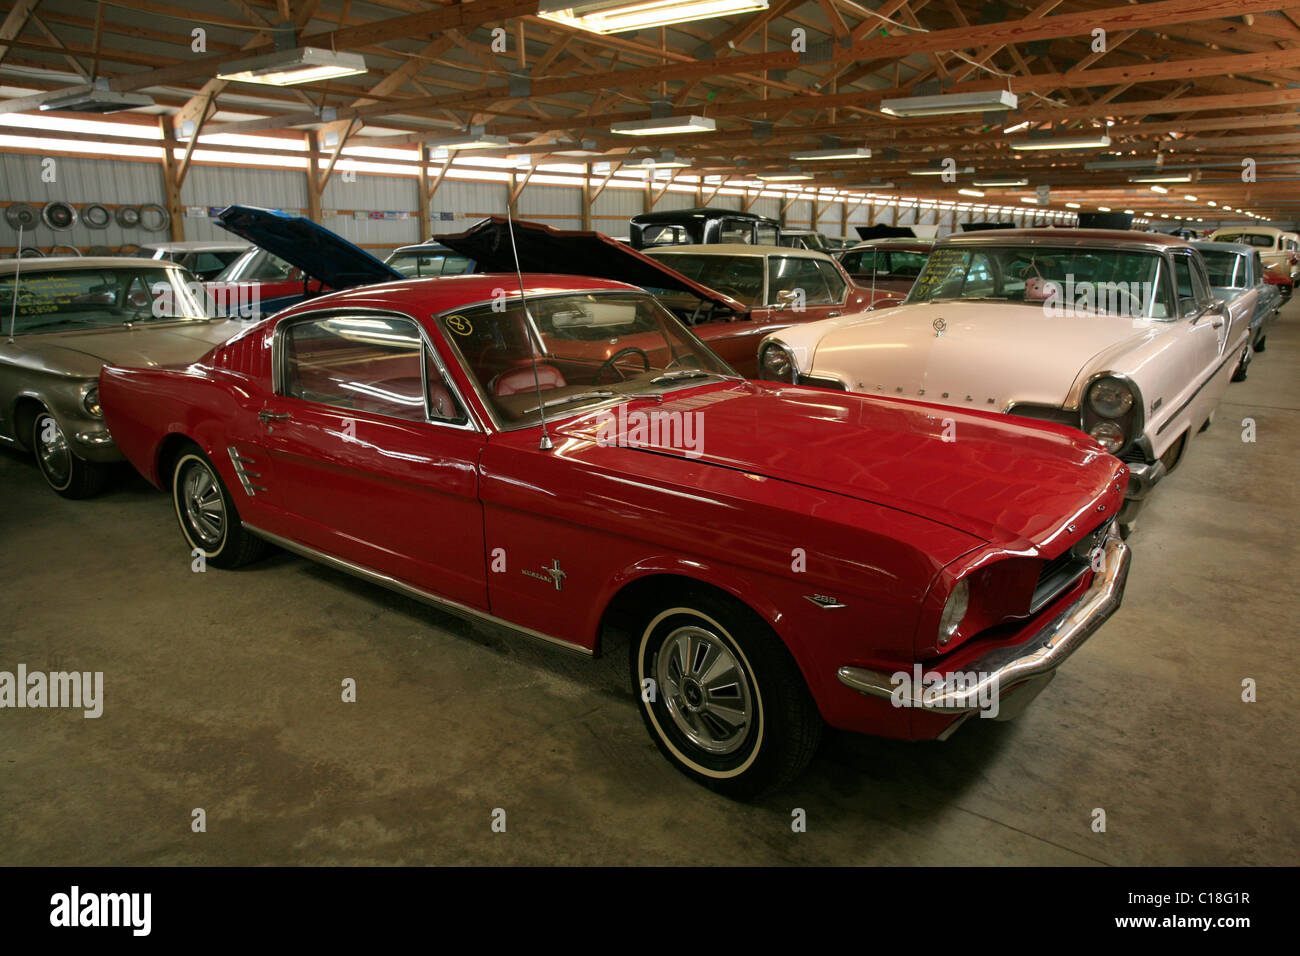 1965 v8 ford mustang gt fastback in the vintage car show country stock photo - Ford mustang vintage ...